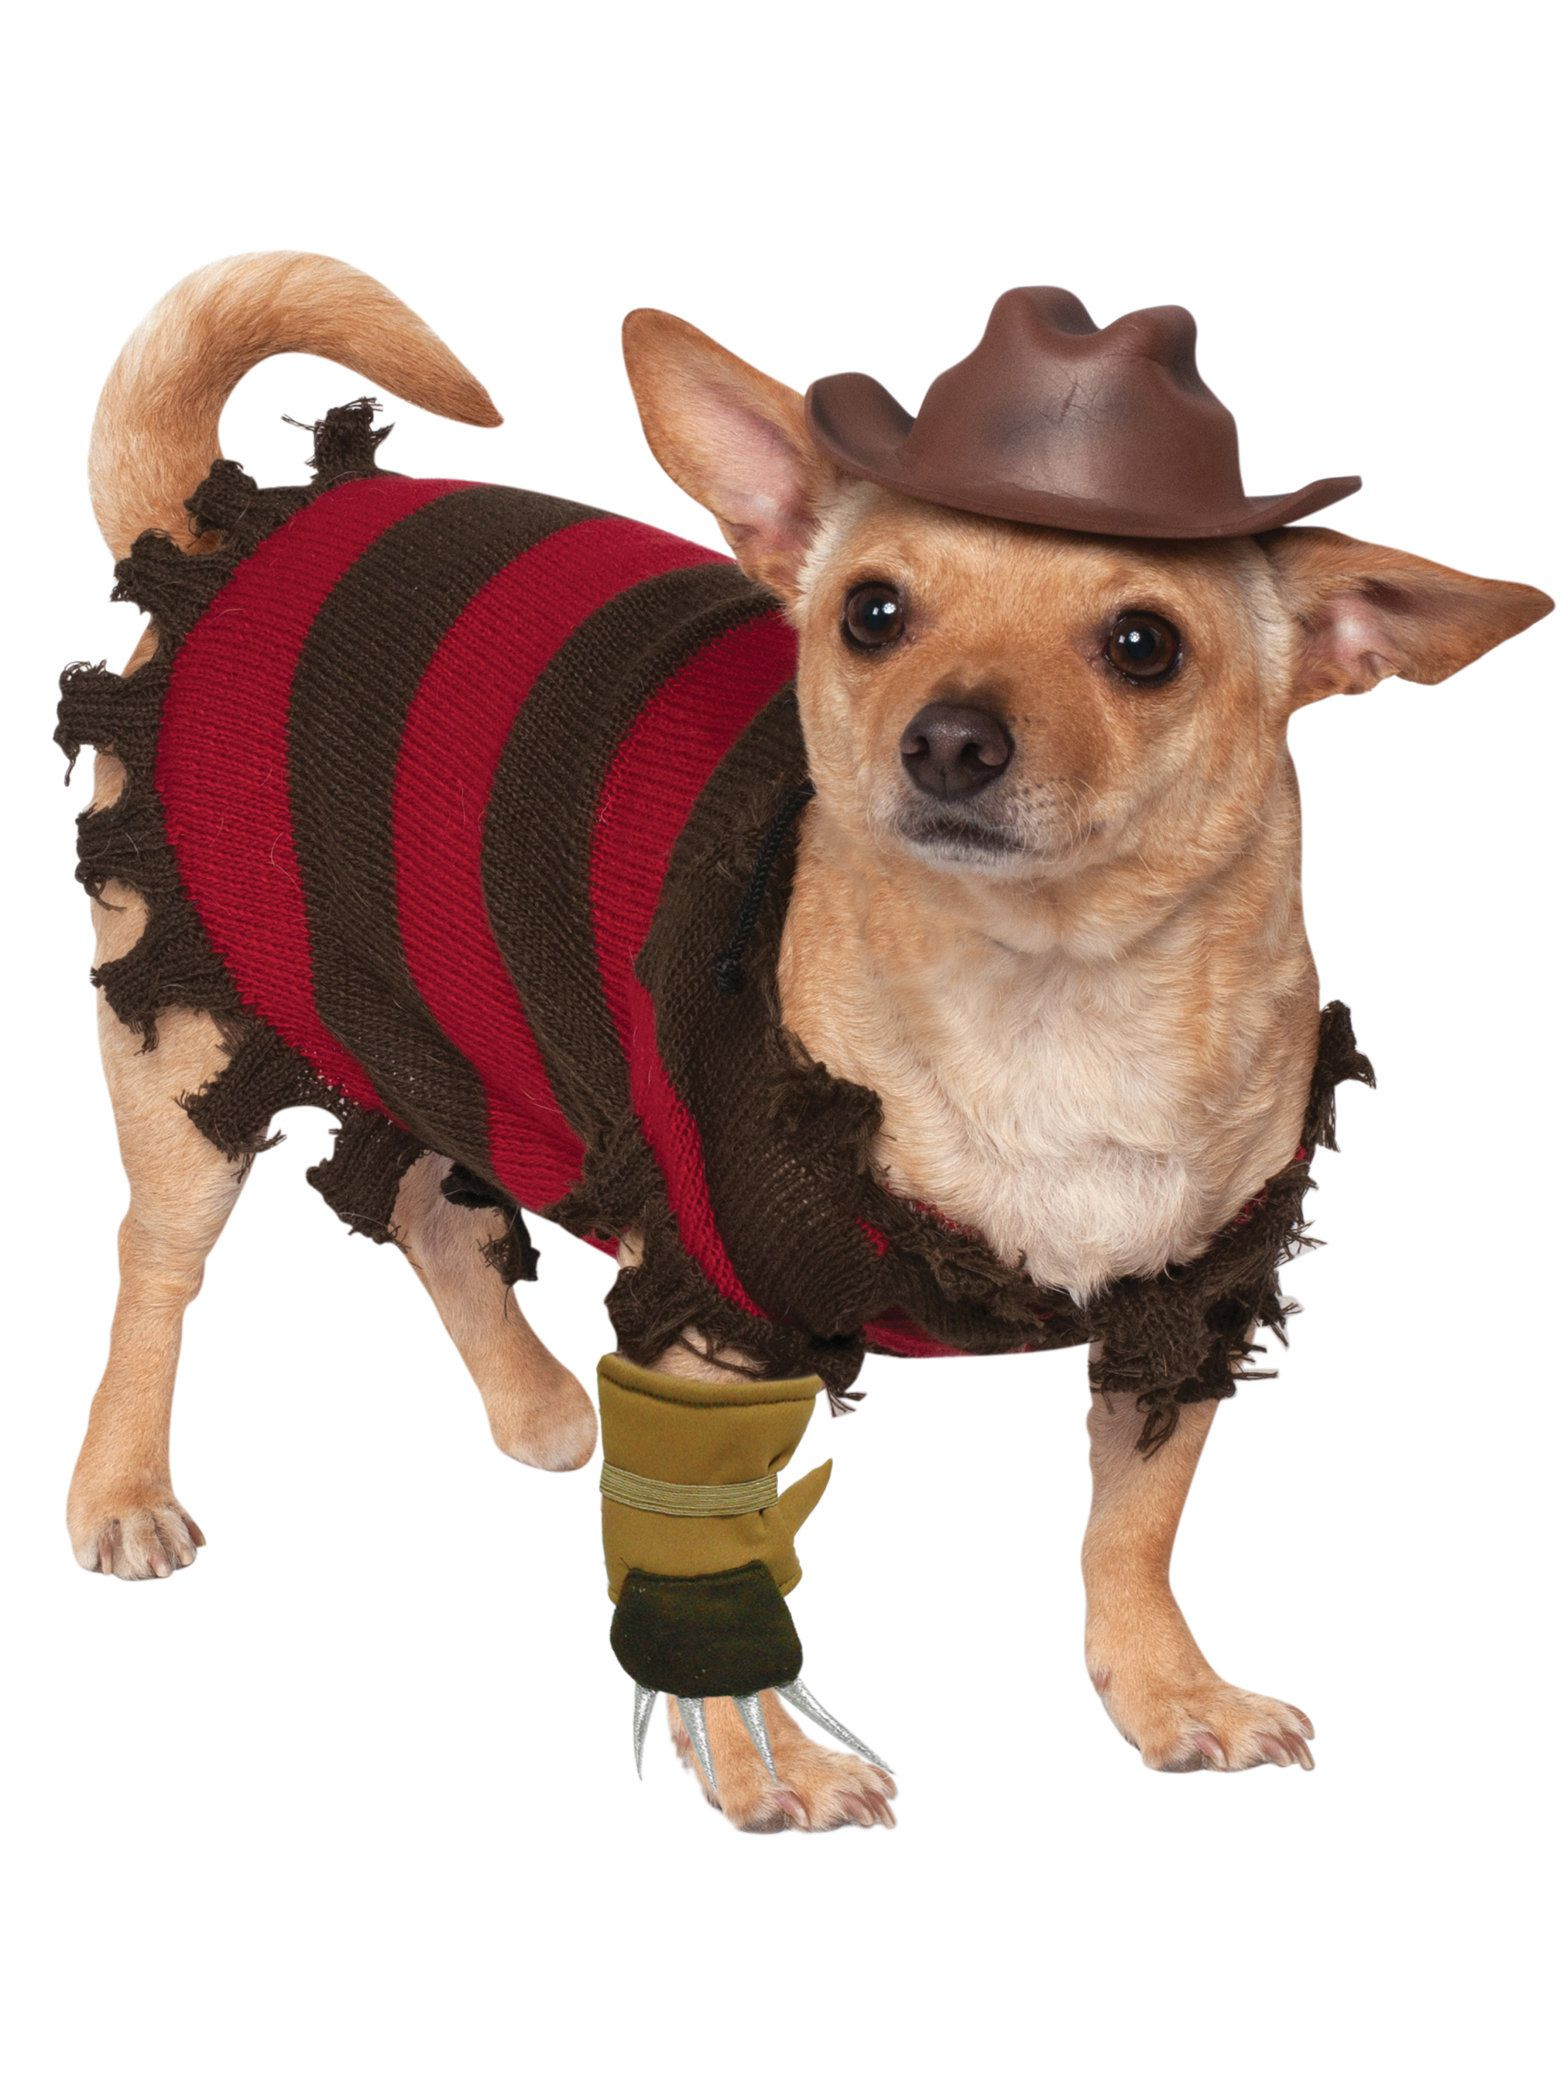 pet freddy krueger costume - dog and cat costumes for 2018